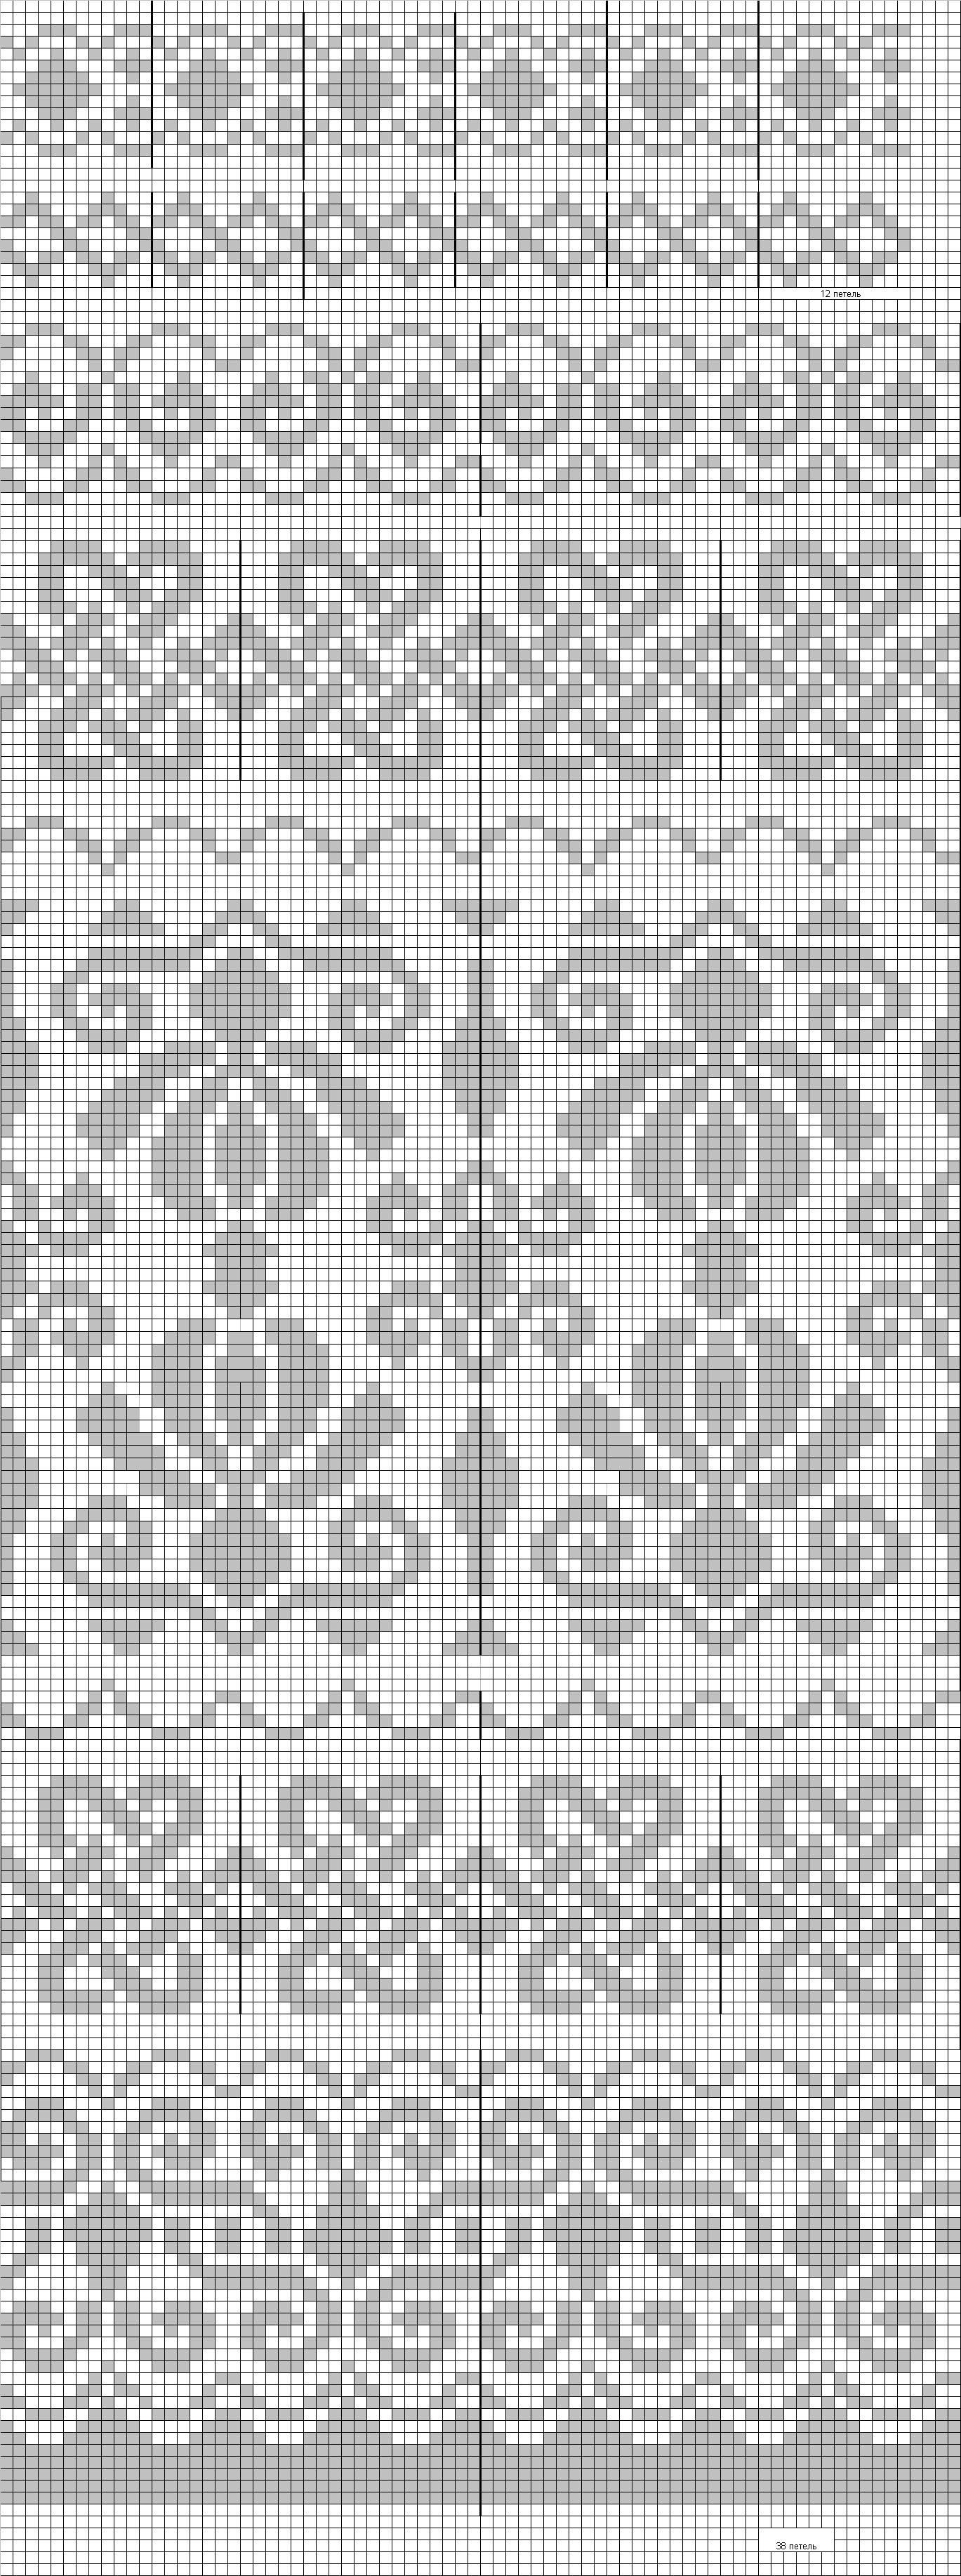 so many of these patterns could be cross stitch too